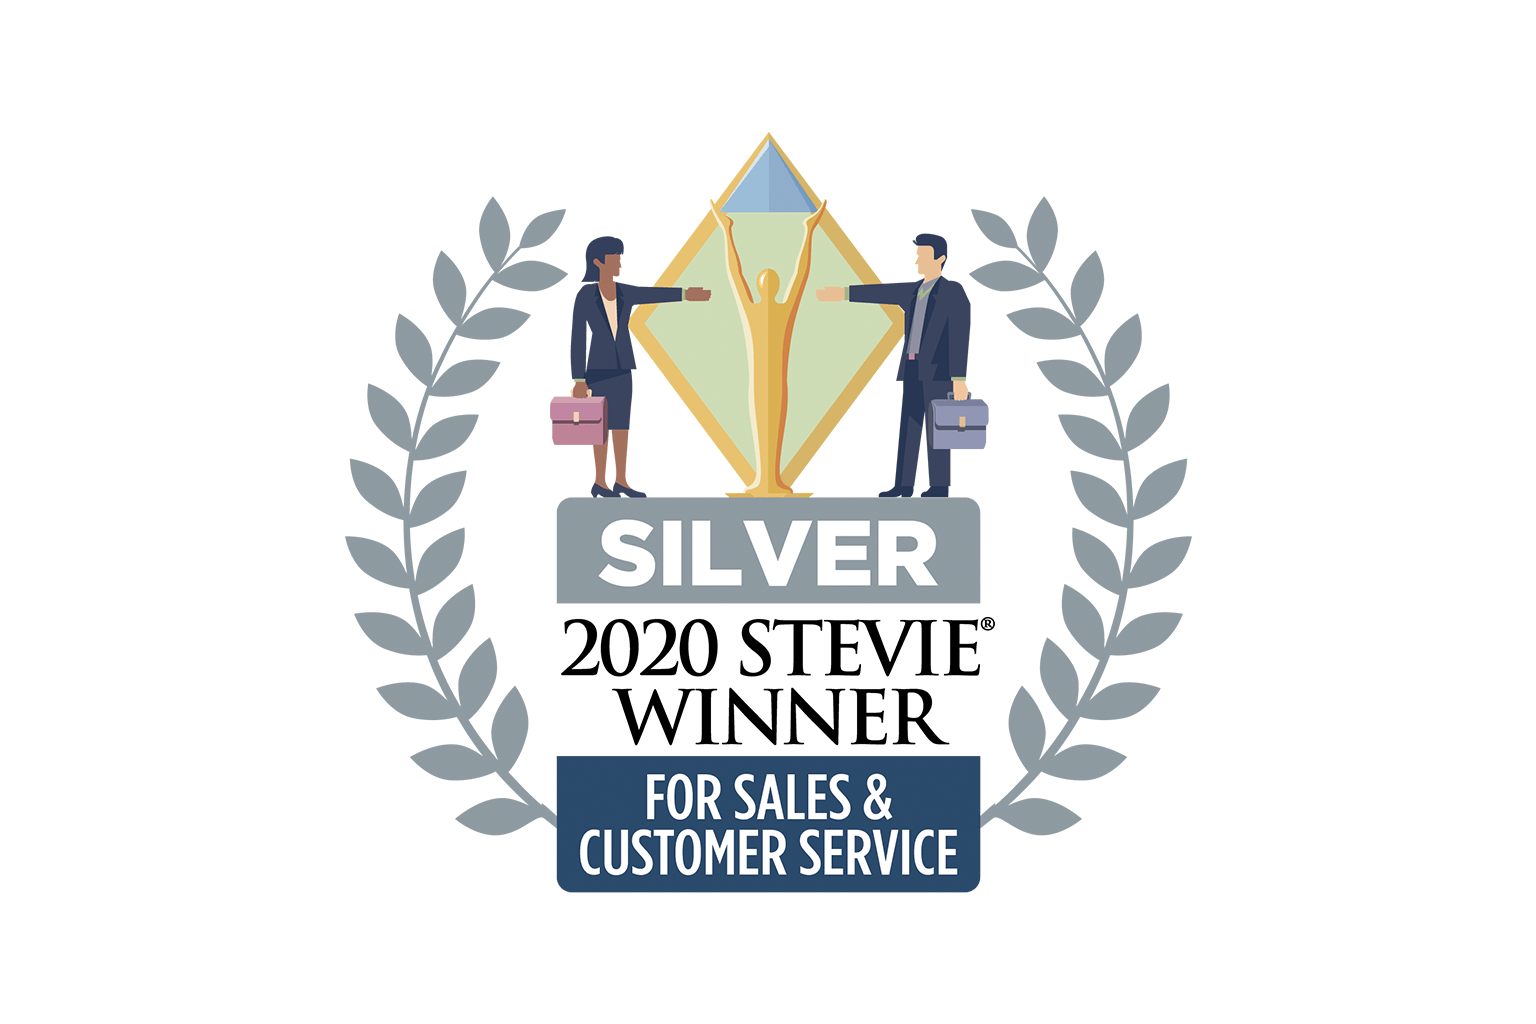 2020 Silver Stevie - Sales and Customer Service